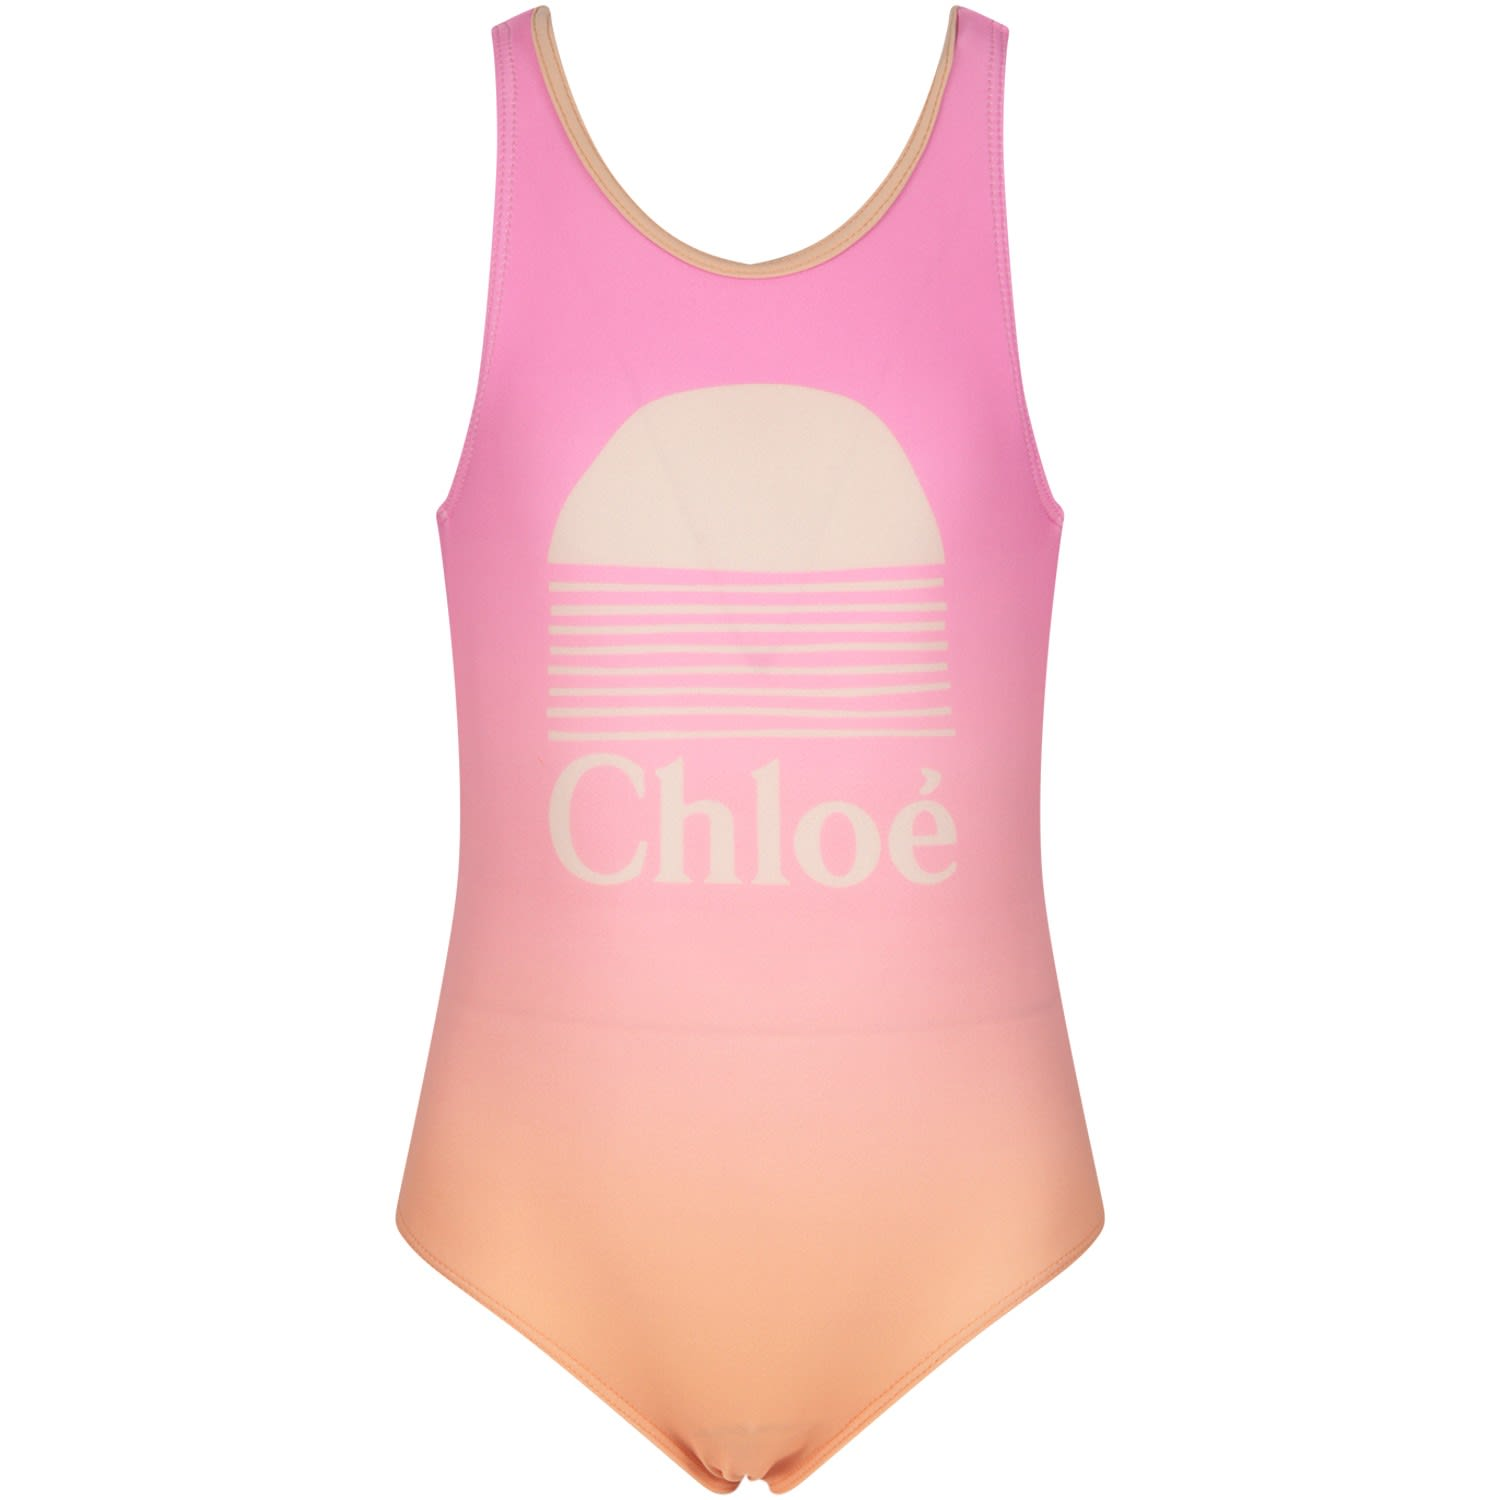 Chloé MULTICOLOR GIRL SWIMSUIT WITH LOGO